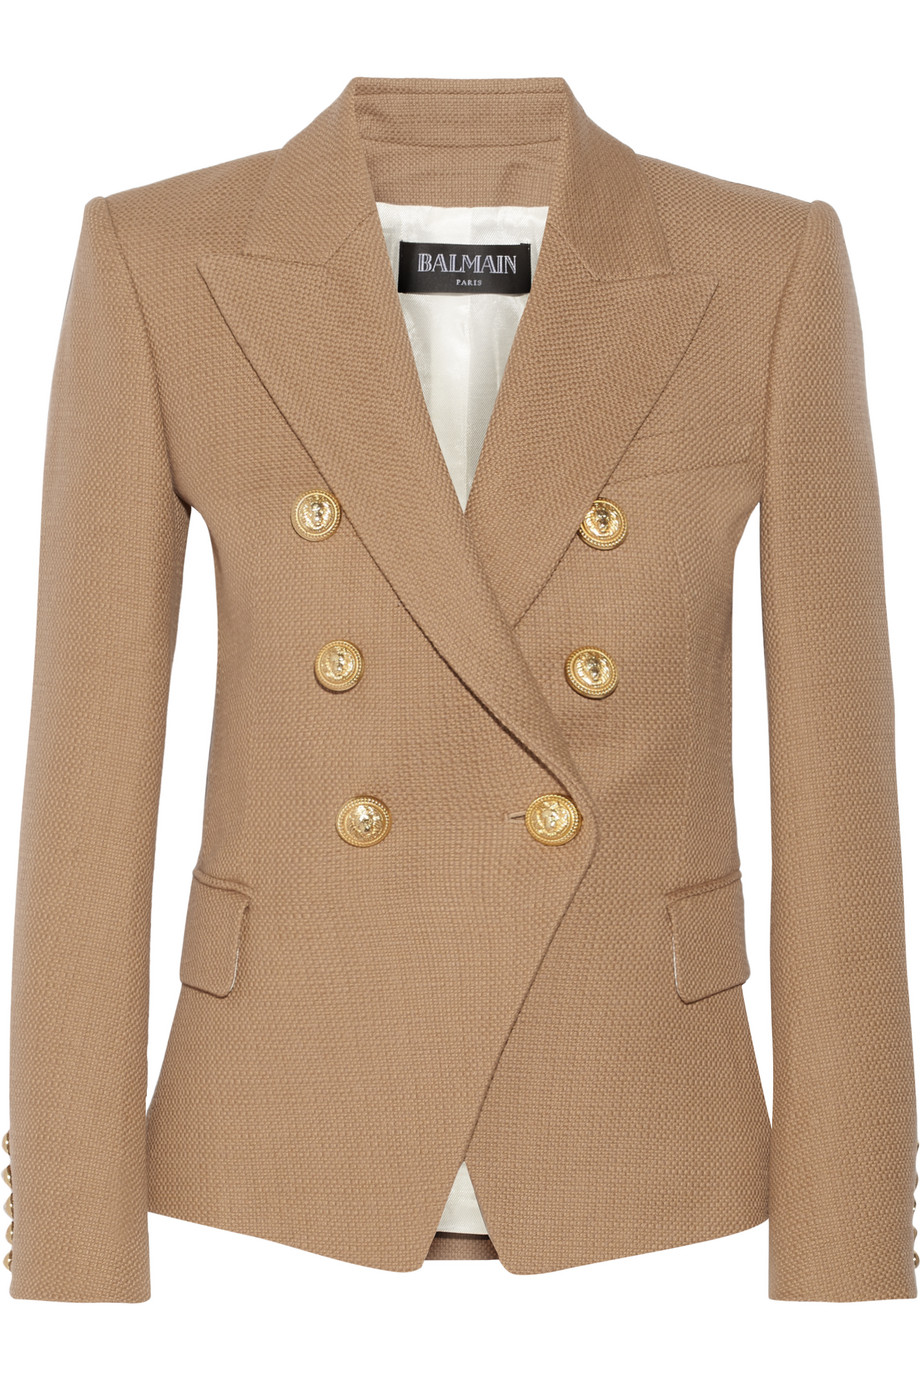 Balmain Double-Breasted Basketweave Cotton Blazer, Tan, Women's, Size: 38